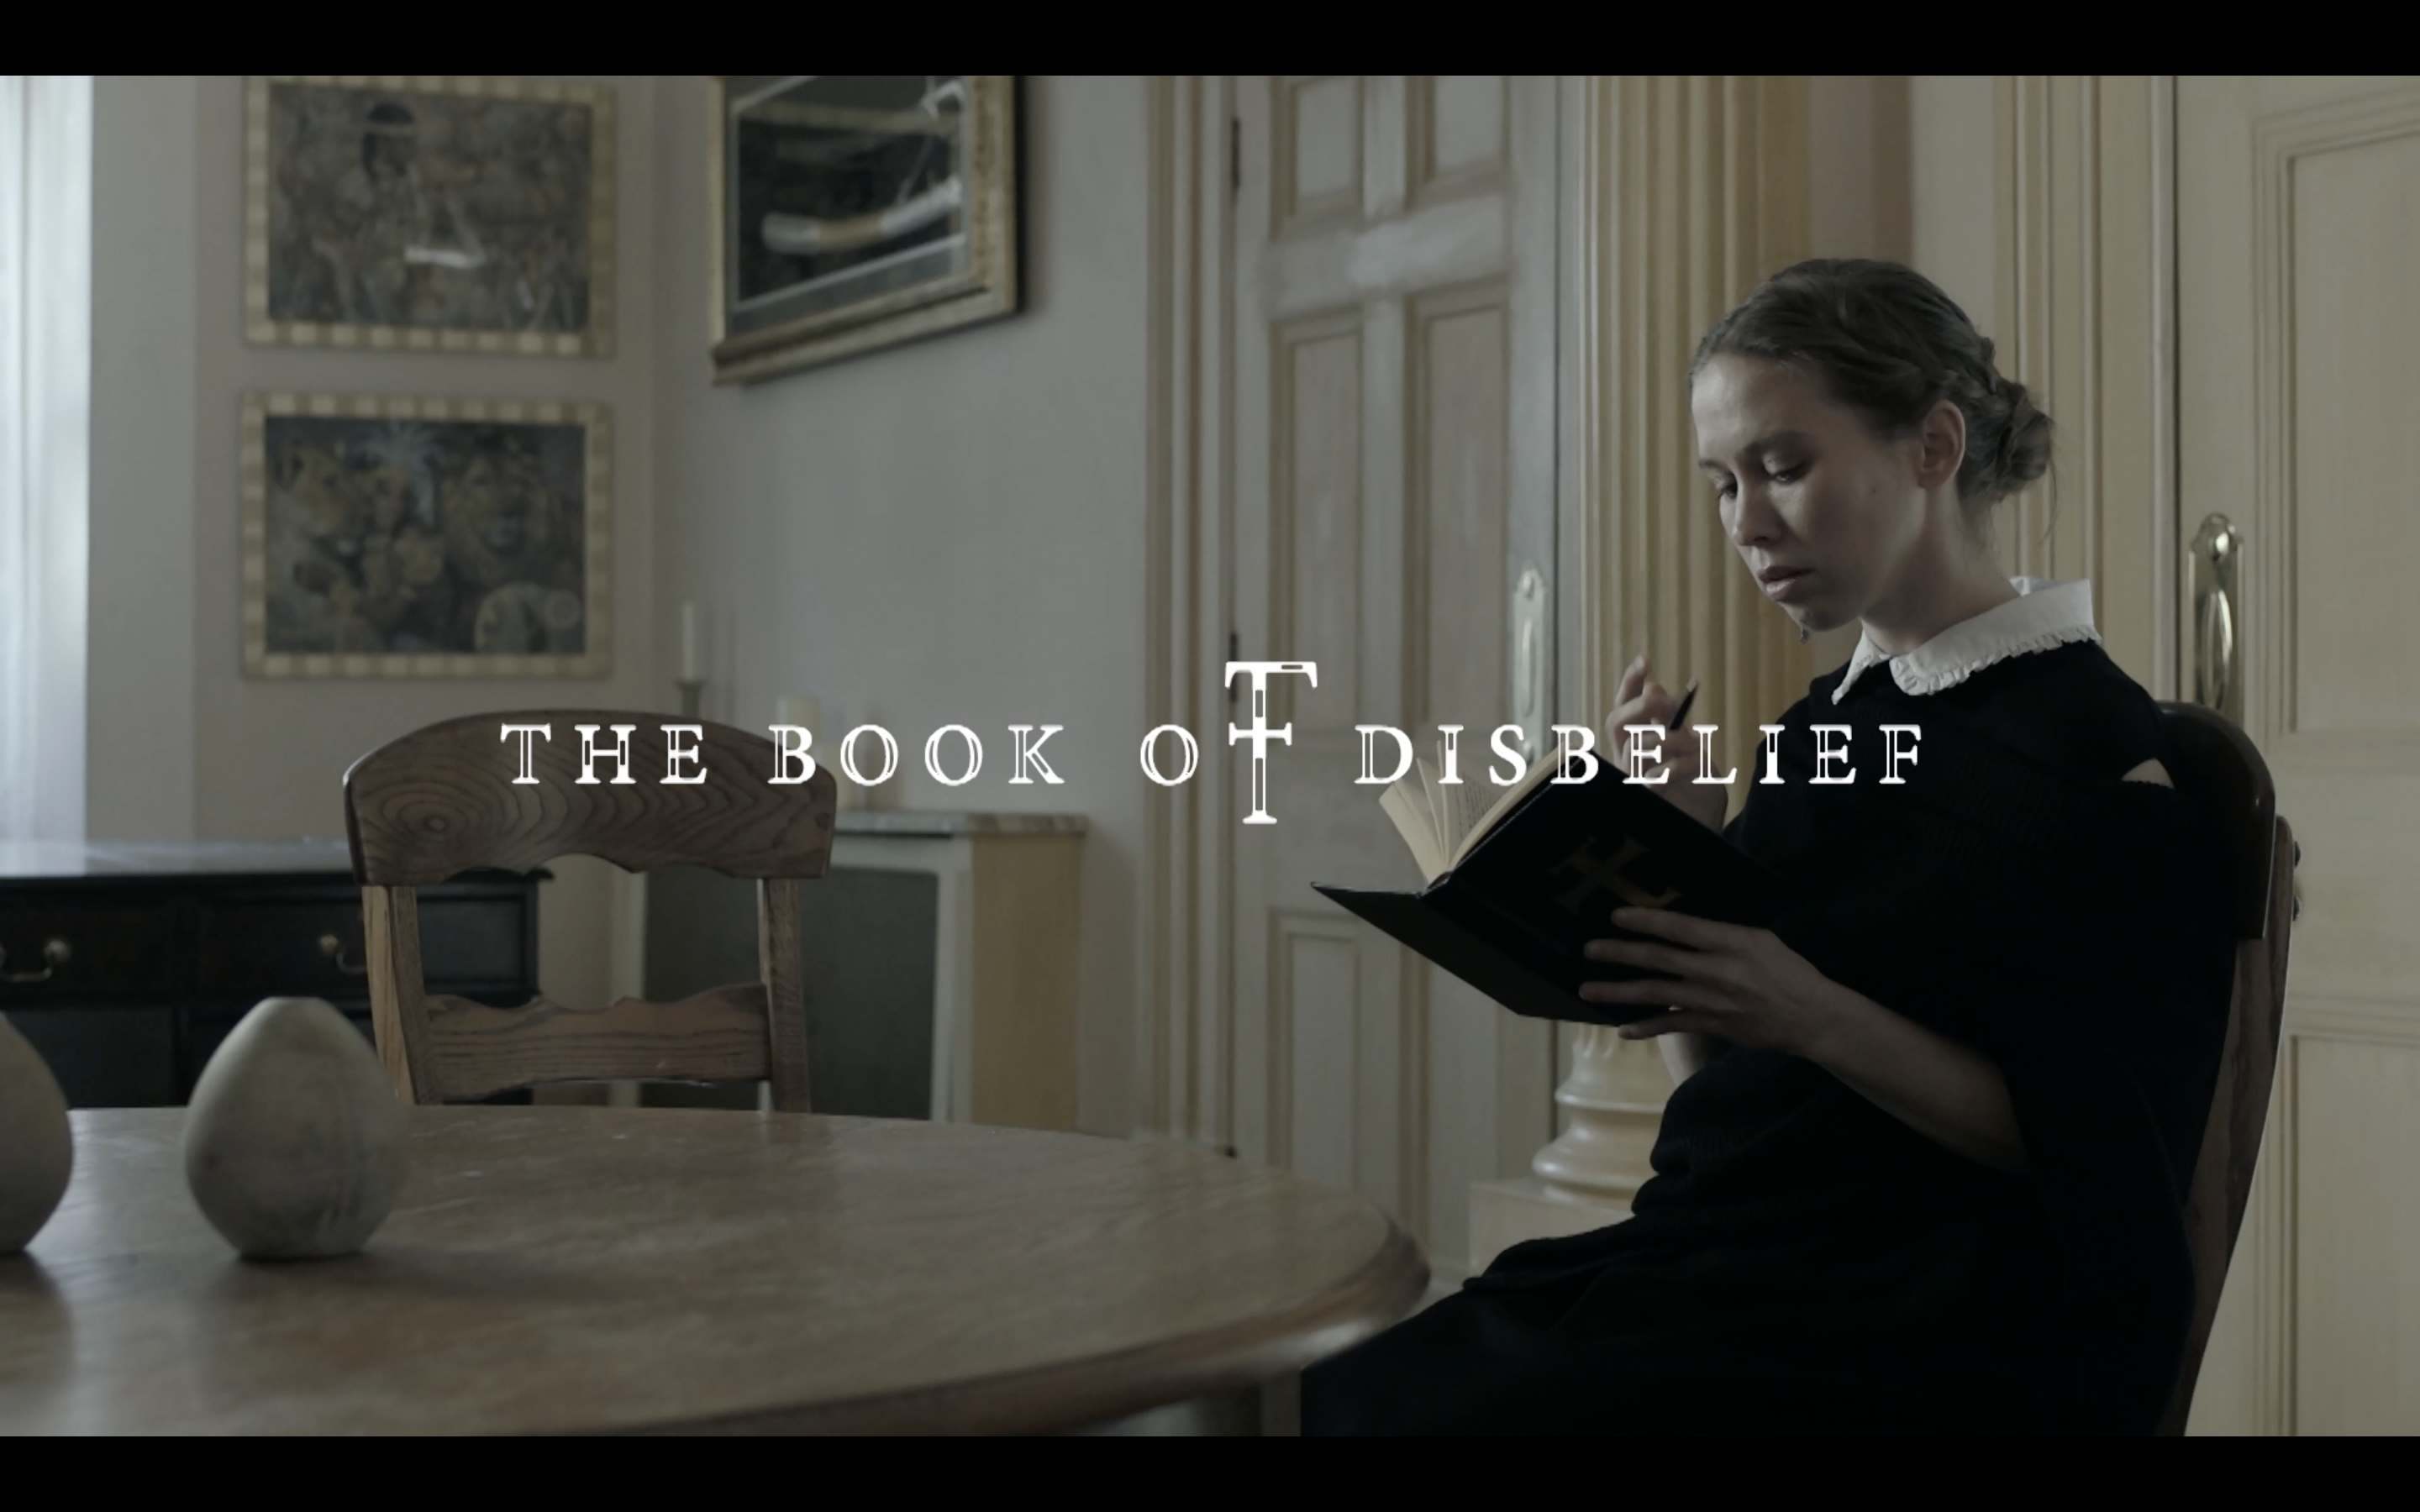 The Book of Disbelief